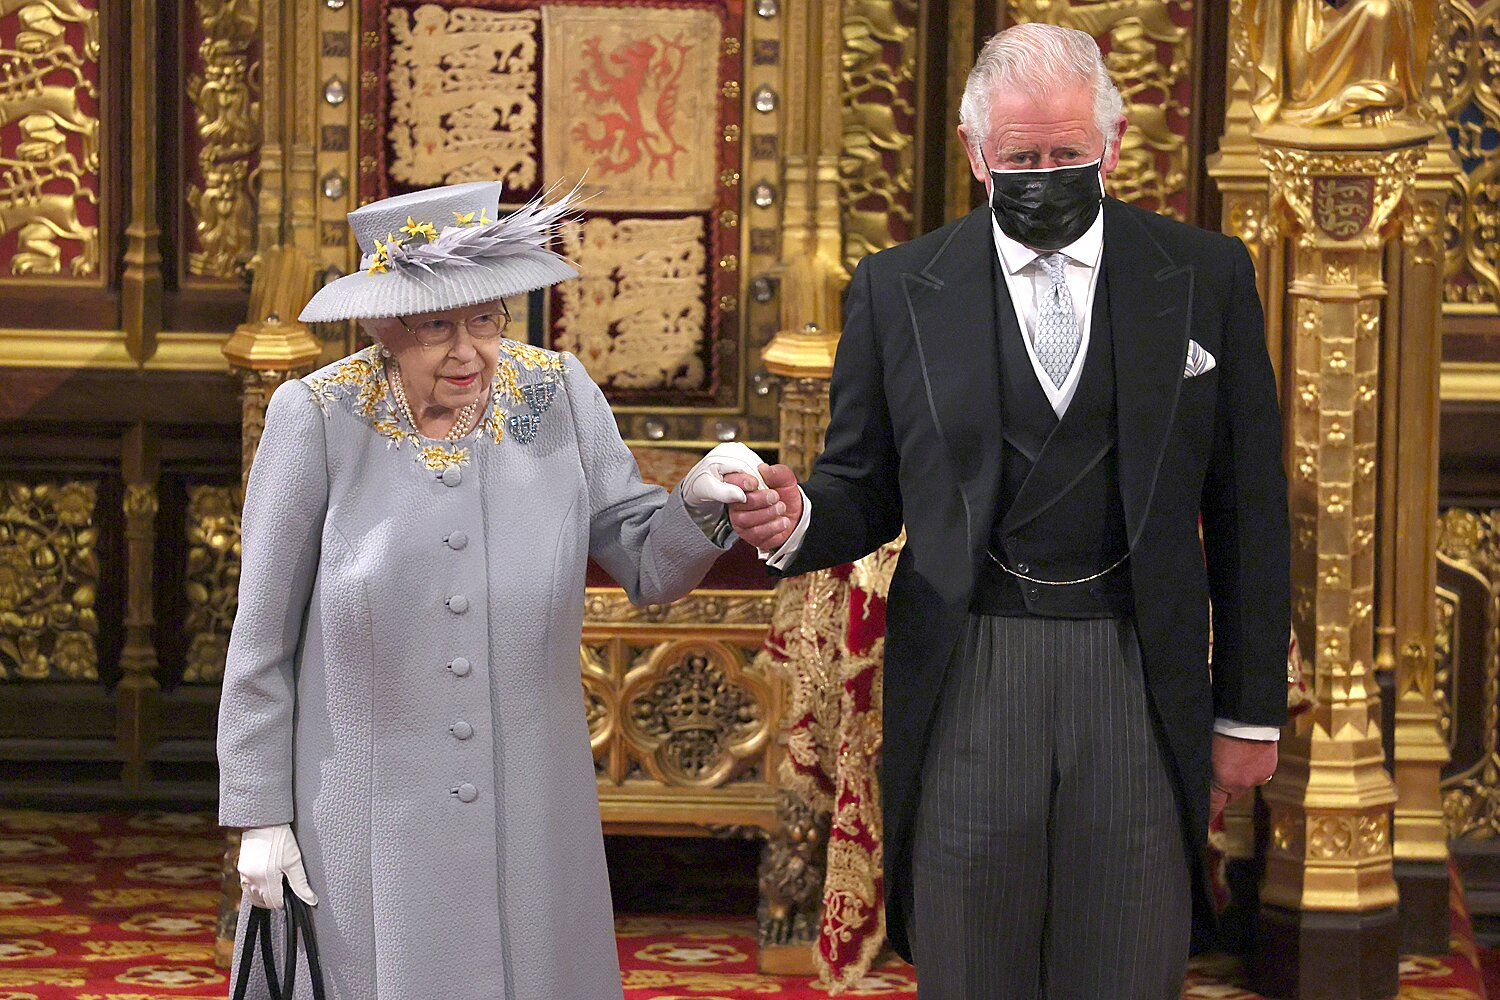 Queen Elizabeth II arrives with Prince Charles